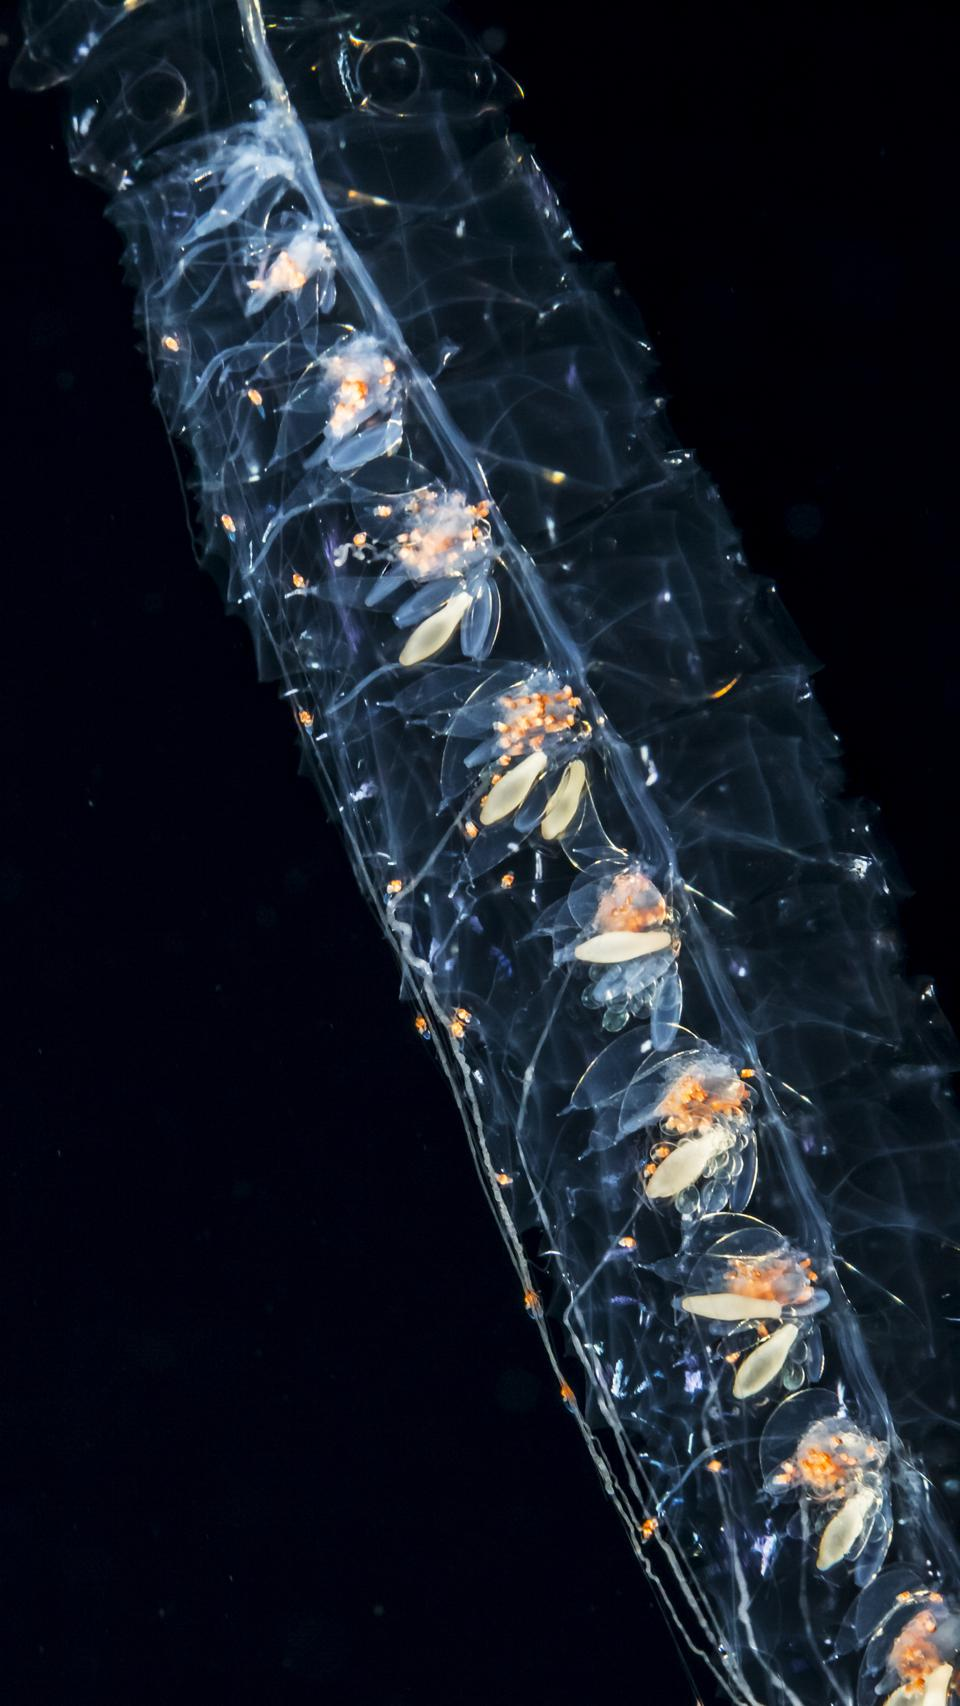 Close-up of the jelly-like siphonophore, showing the zooids that make up the colony.